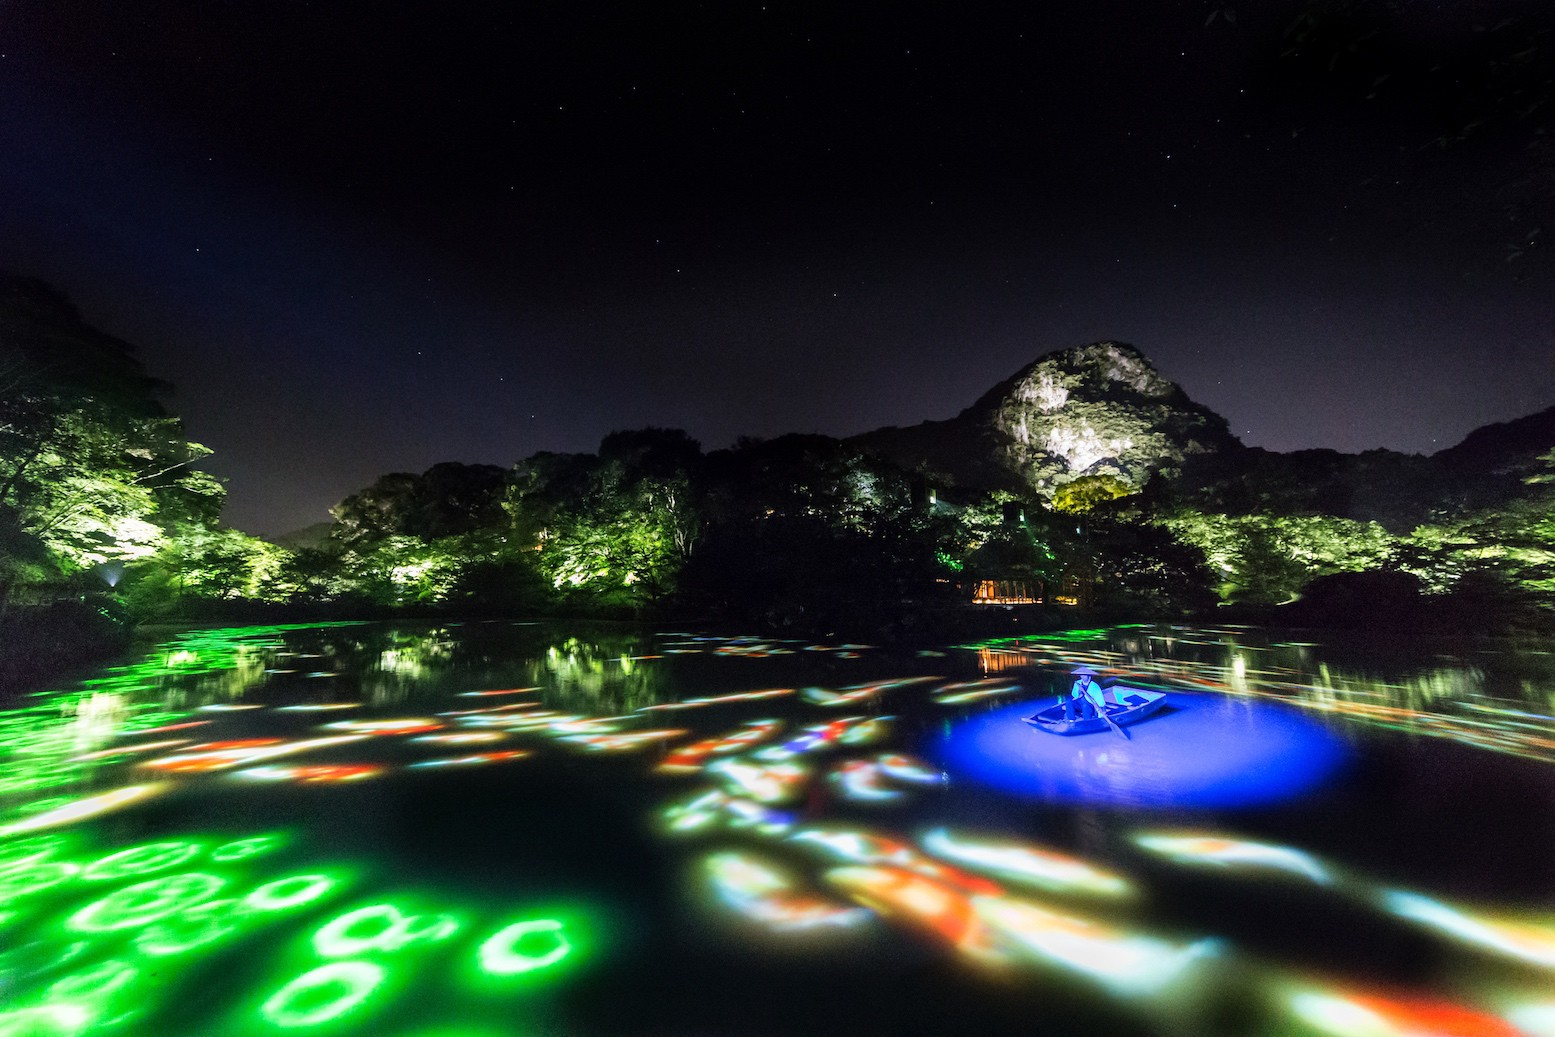 Drawing on the Water Surface with Lotus Flowers, Created by the Dance of Koi and Small Boats on Mifuneyama Rakuen Pond | © teamLab